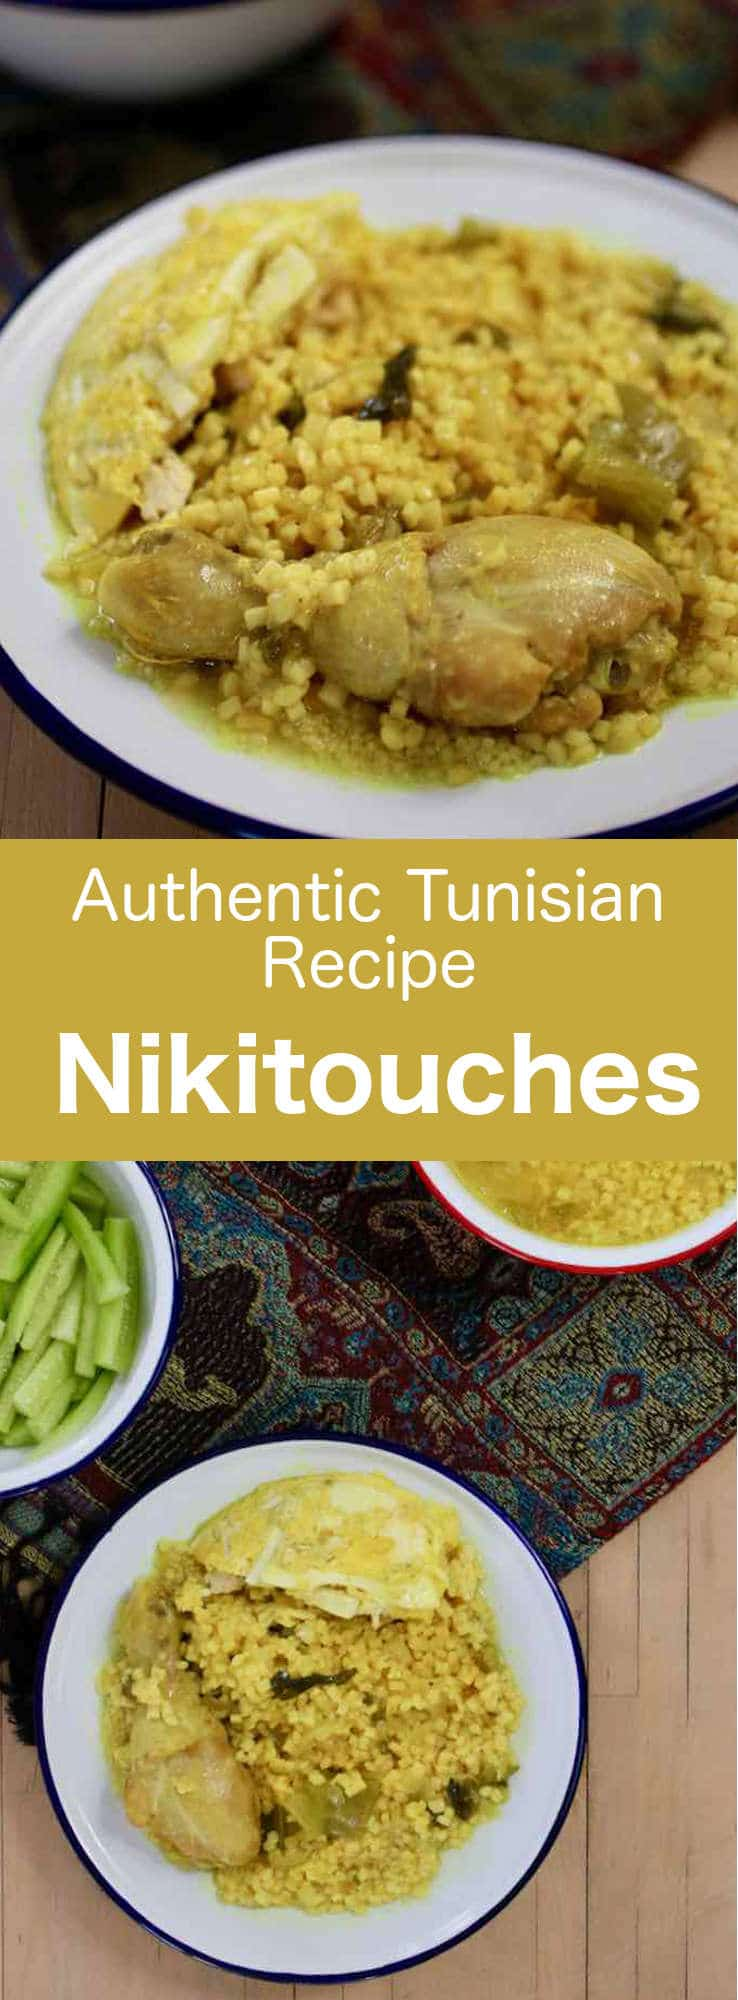 Nikitouches are small round pasta prepared with fine semolina, oil and egg yolk that are usually cooked in chicken broth and served over couscous. #Tunisia #Tunisian #TunisianCuisine #TunisianRecipe #NorthAfricanCuisine #NorthAfricanRecipe #NorthAfrica #Maghreb #MaghrebCuisine #Jewish #JewishRecipe #JewishTunisian #JewishFood #ShabbatLunch #ShabbatDinner #ShabbatRecipe #WorldCuisine #196flavors